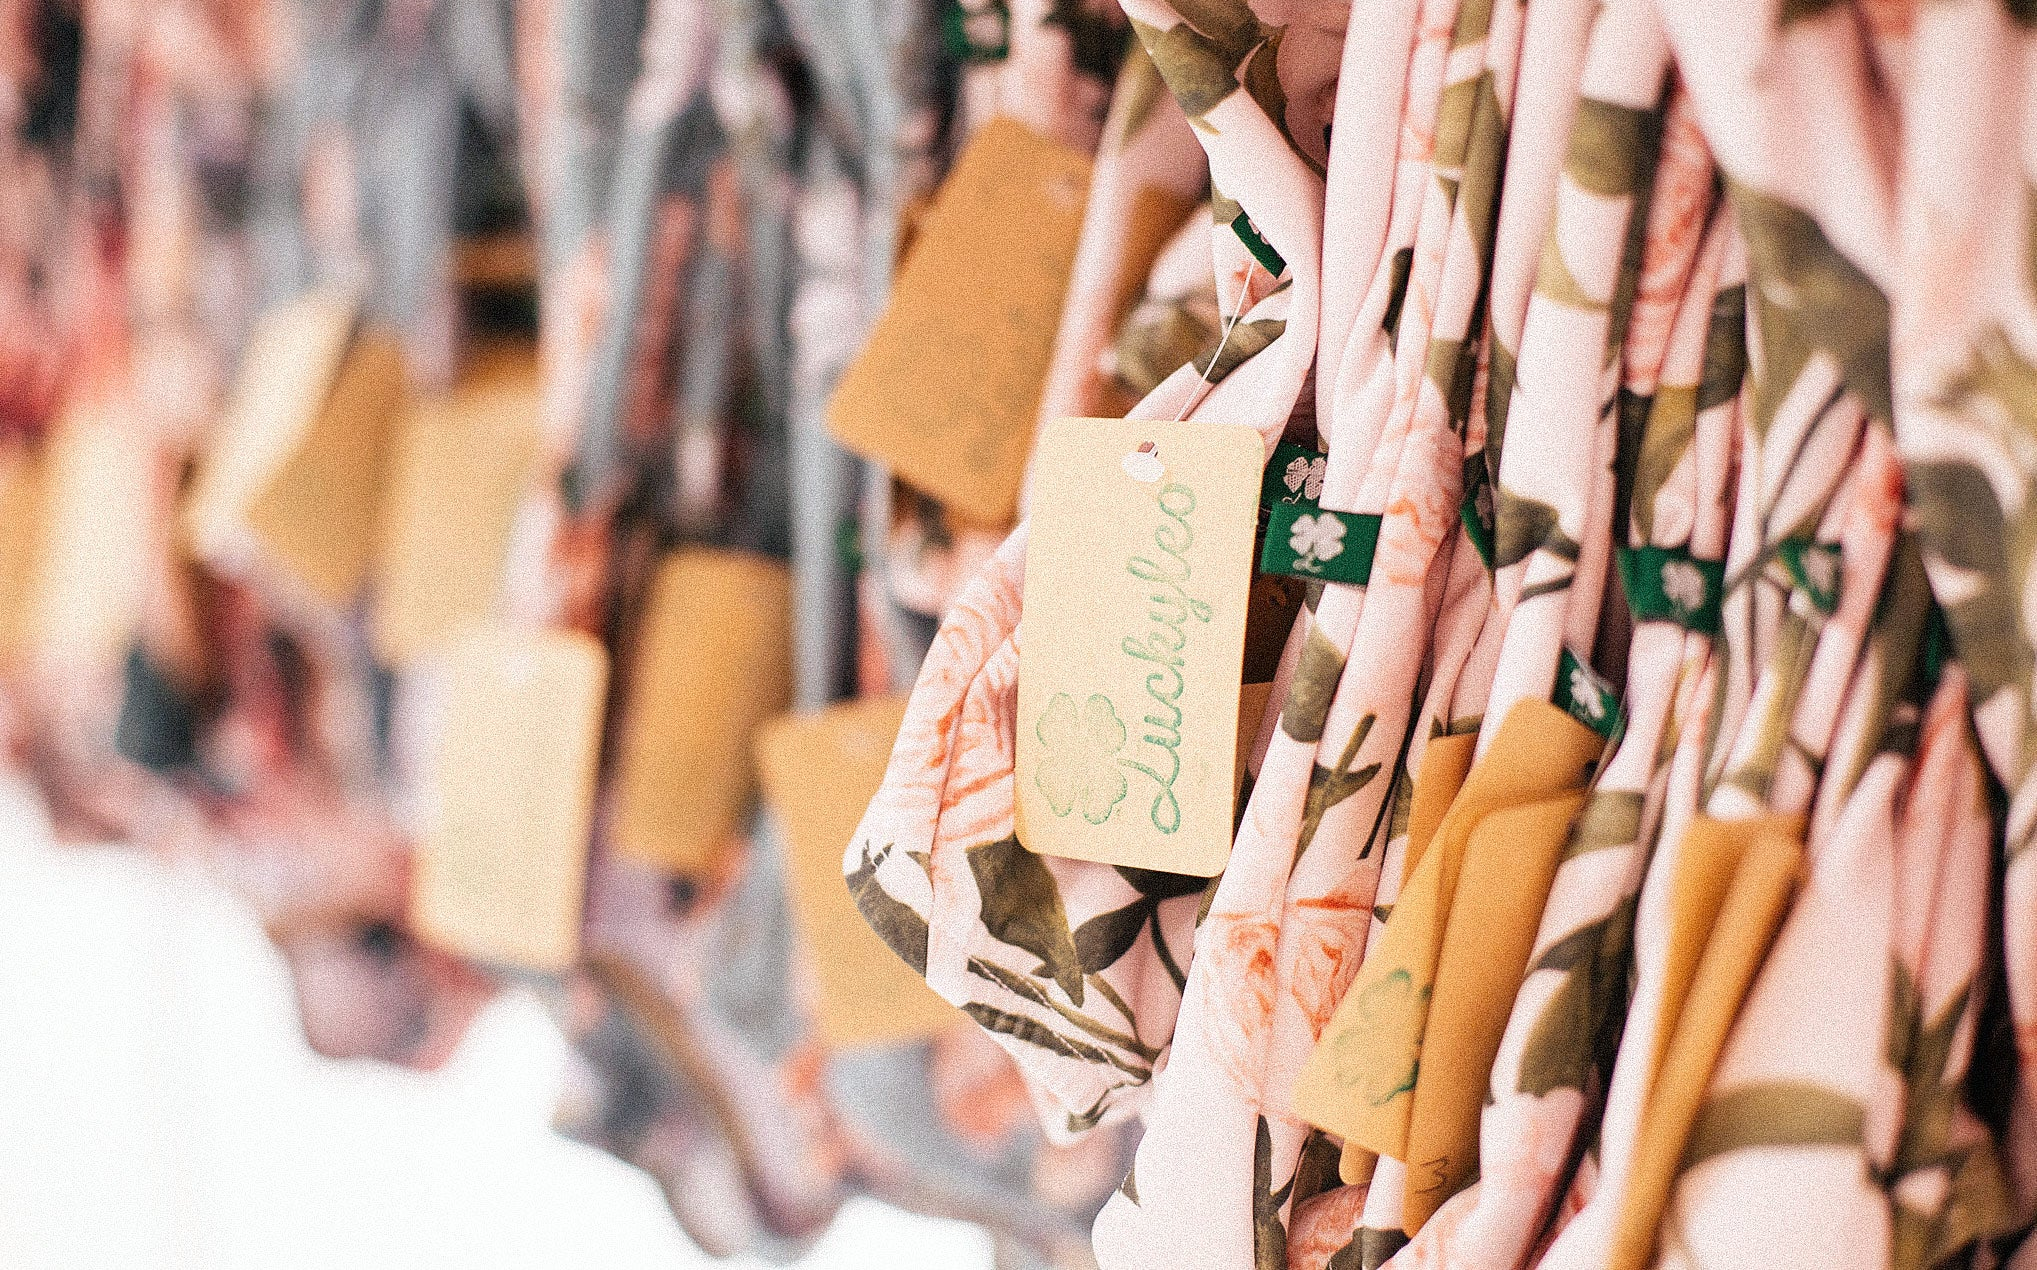 A close-up shot of racks of colorful leotards hanging together with a brown Luckyleo hang tag in focus.